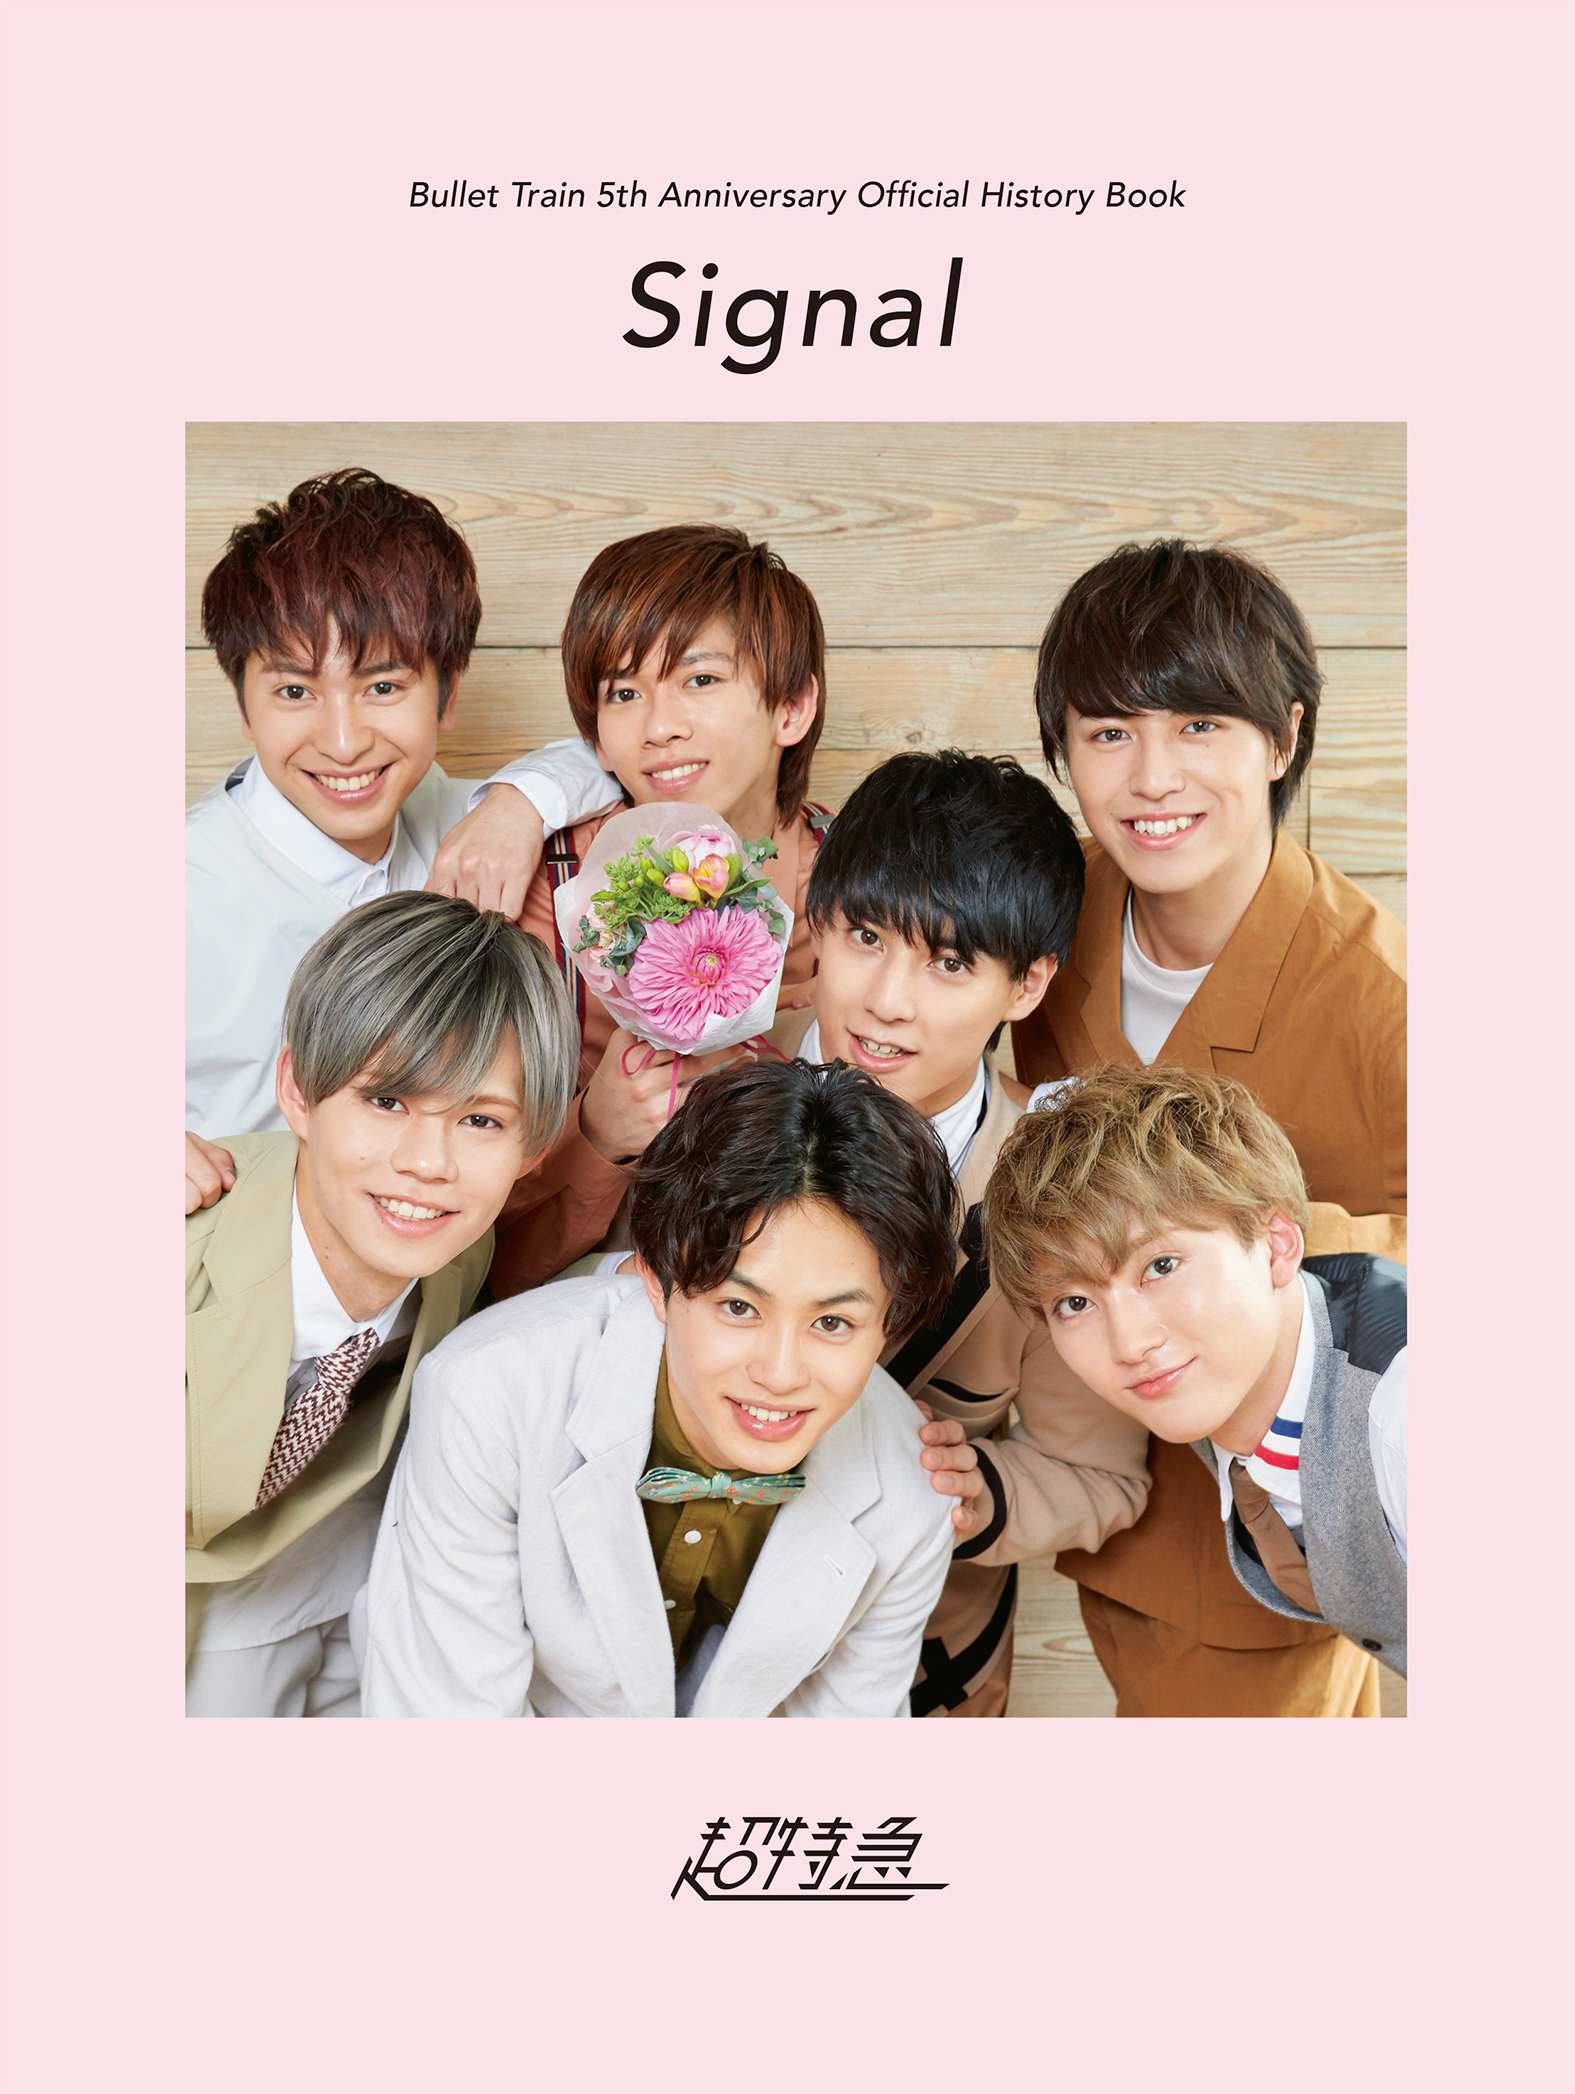 「Bullet Train 5th Anniversary Official History Book 『Signal』」